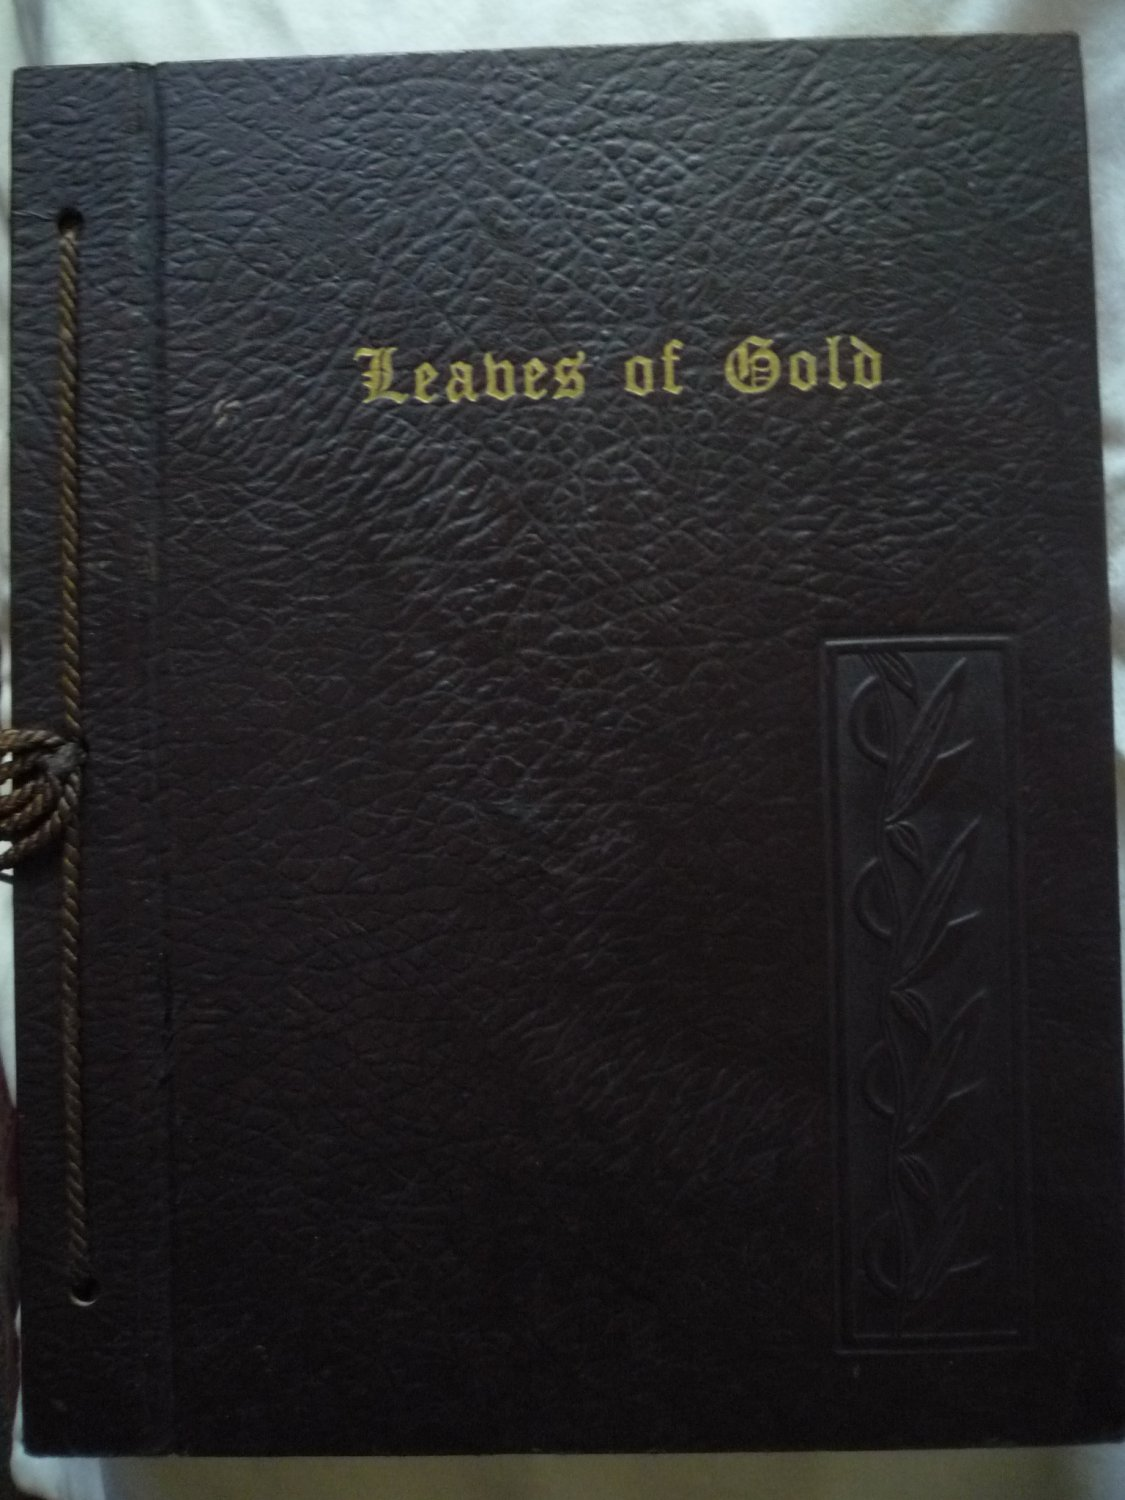 Leaves of Gold hardcover book of inspirations